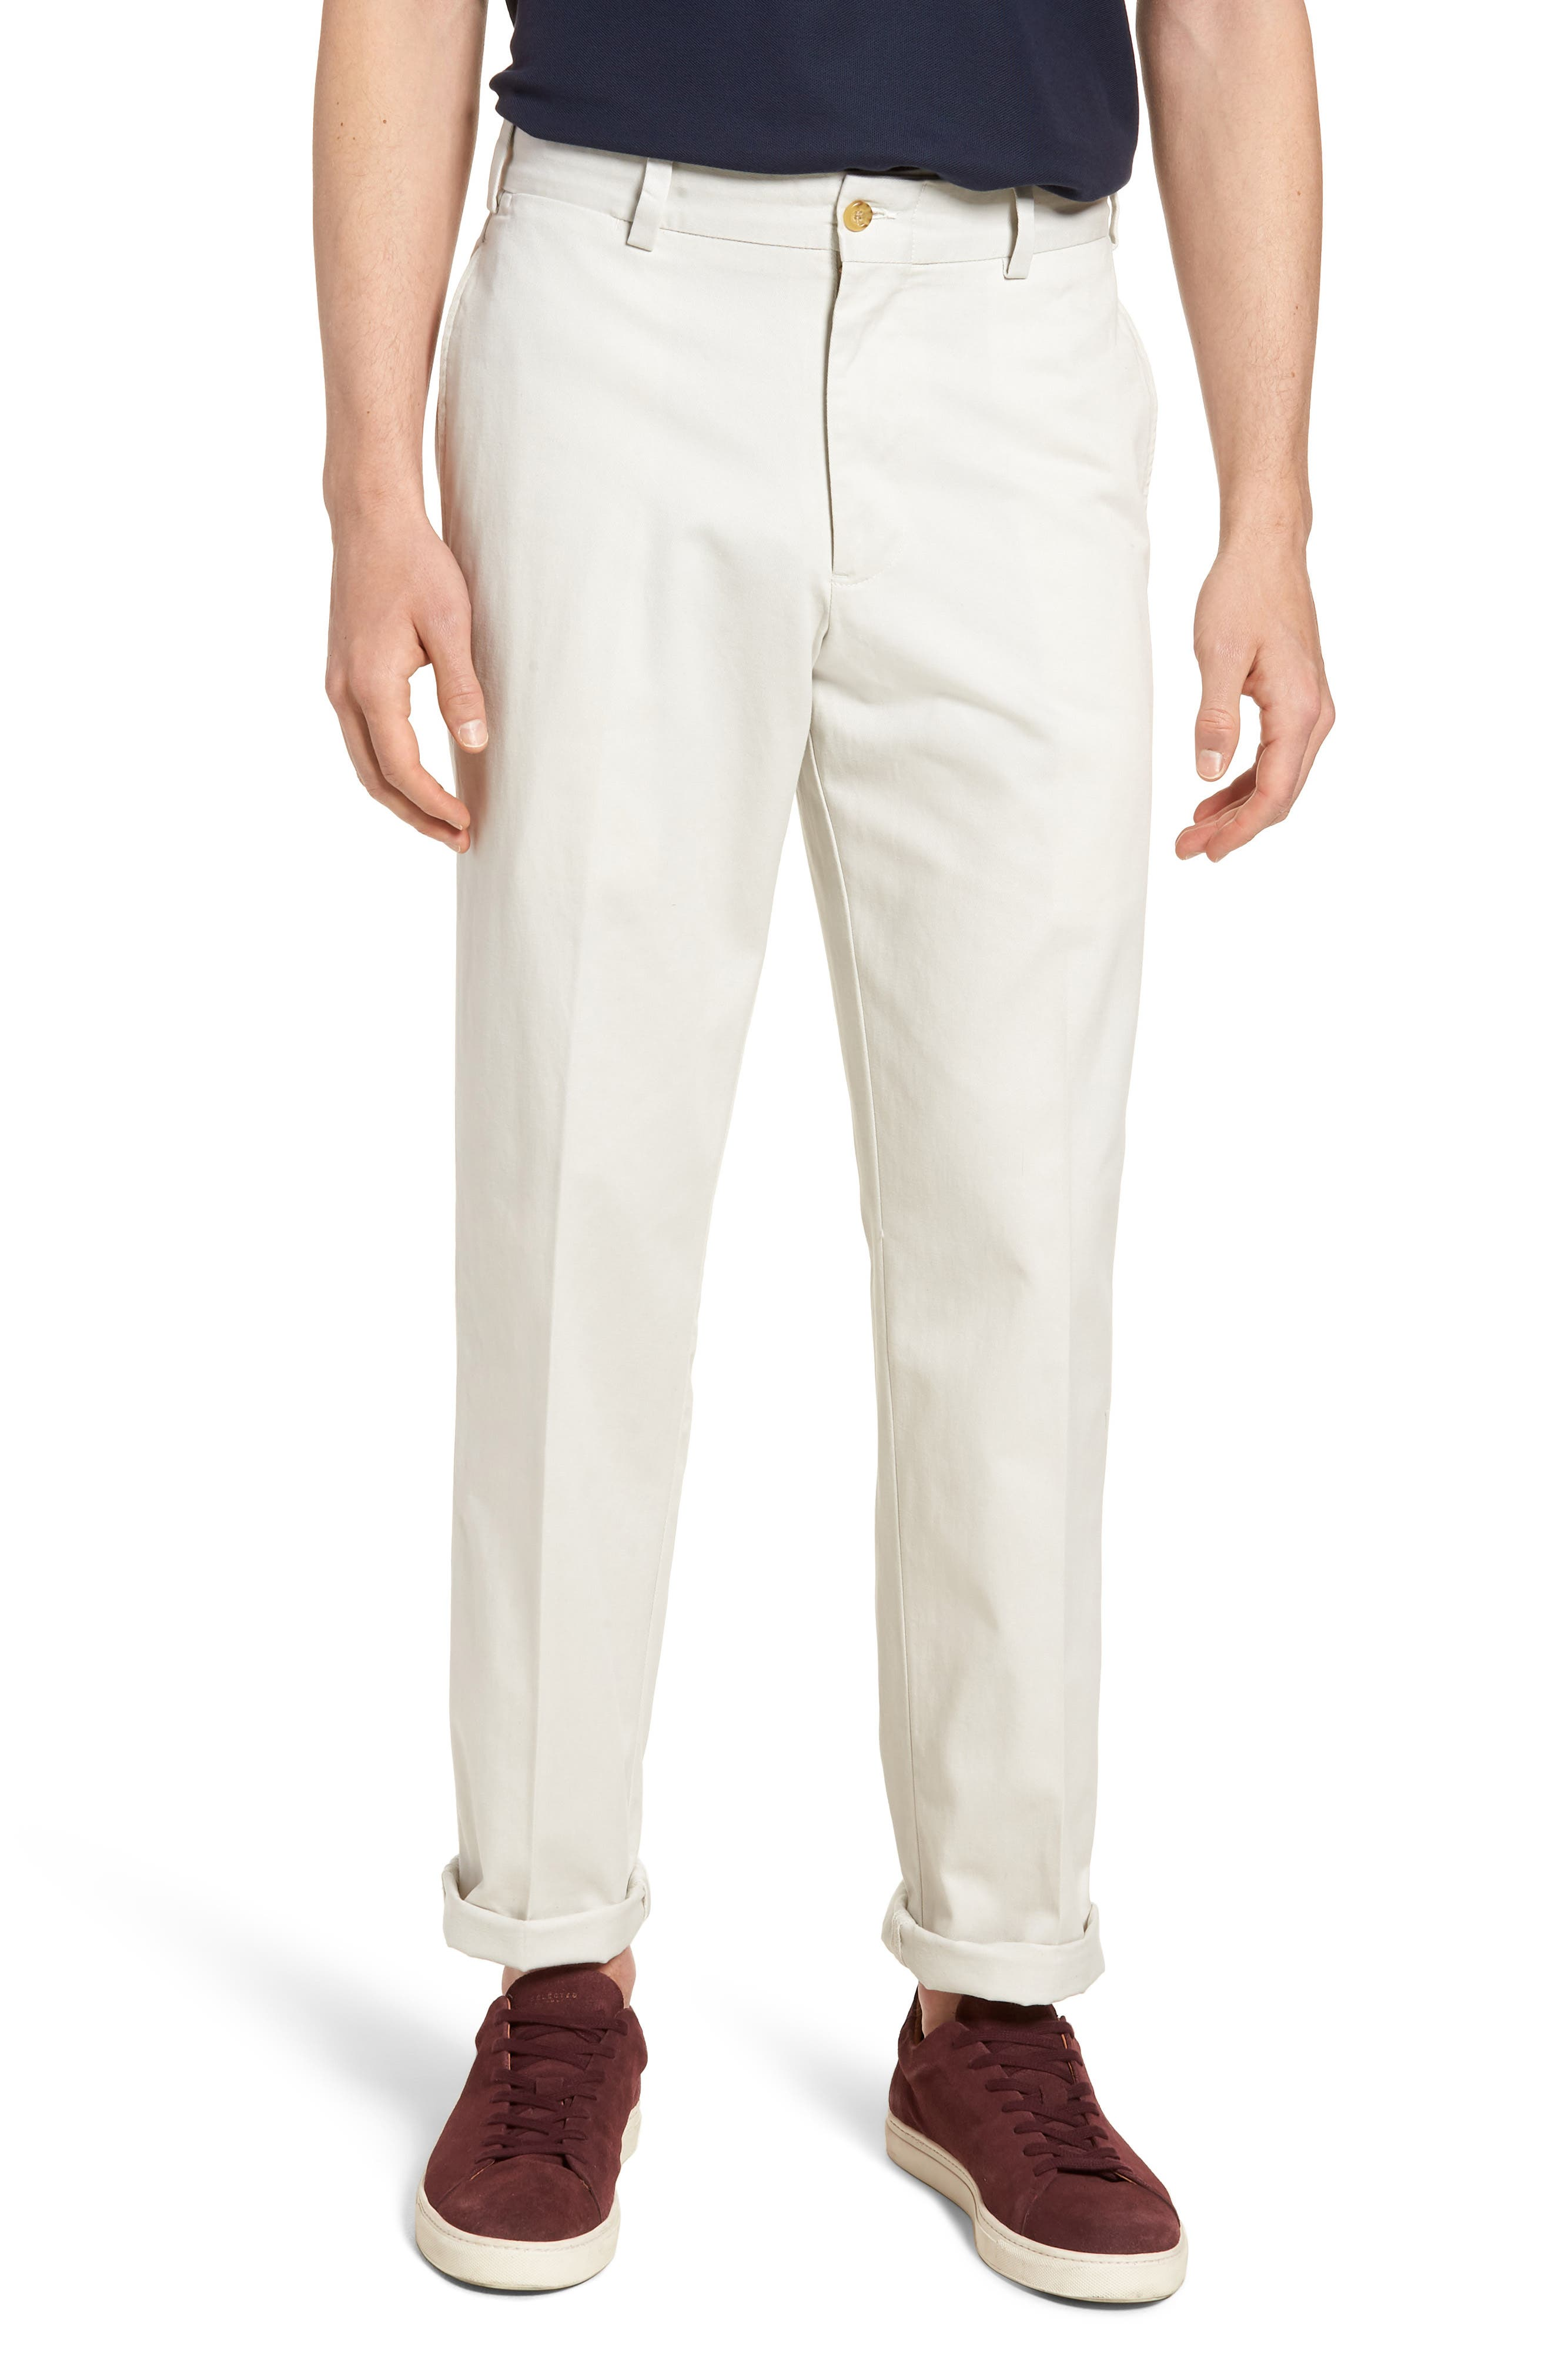 M2 Classic Fit Vintage Twill Flat Front Pants,                         Main,                         color, Stone